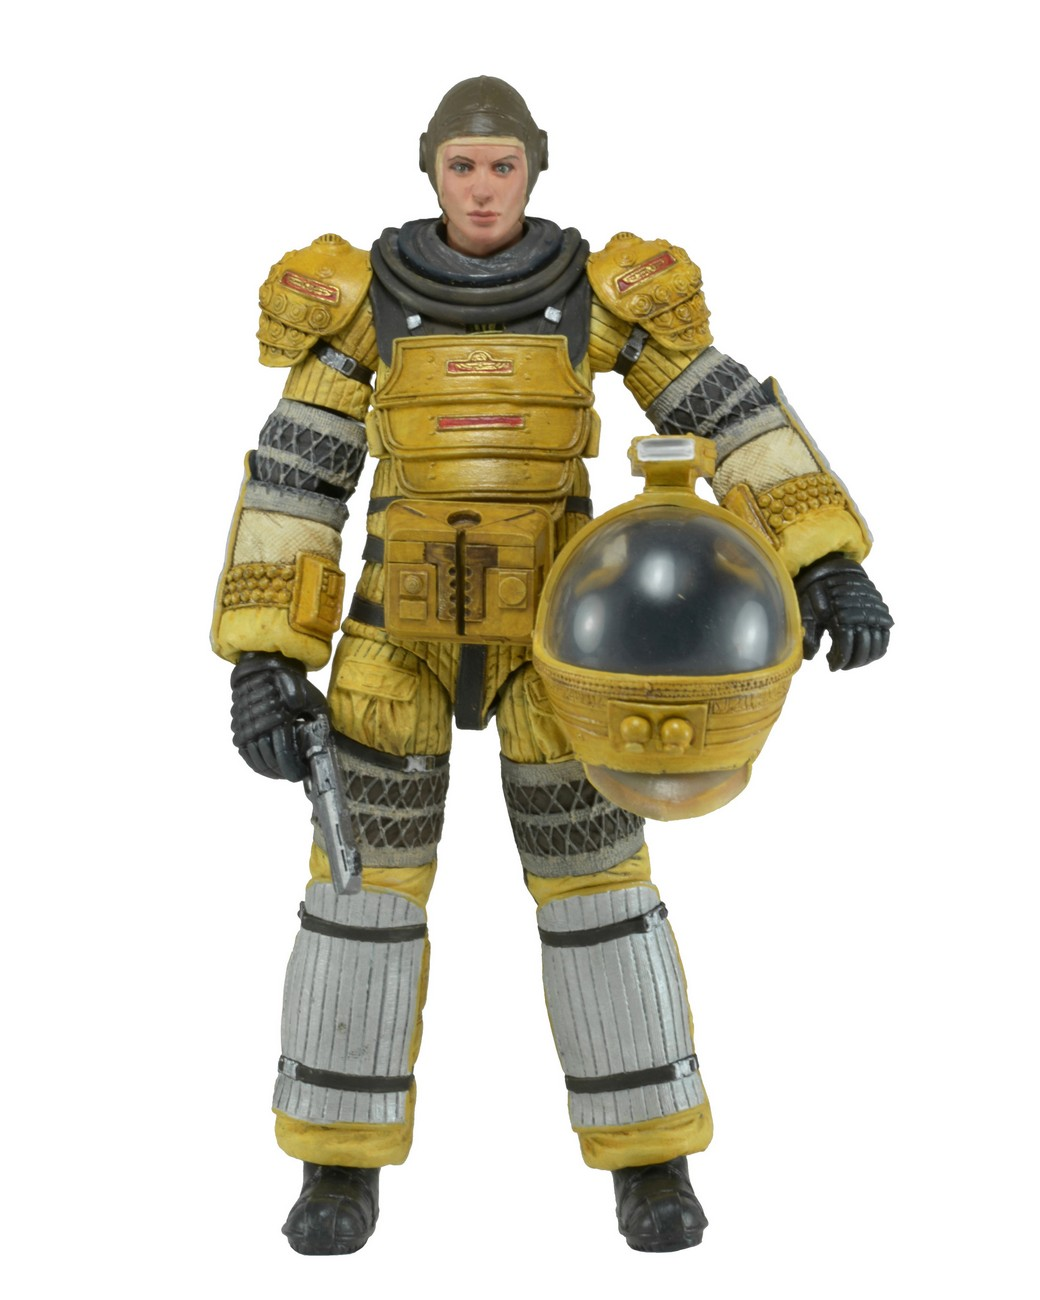 1300x-51368 Amanda Spacesuit